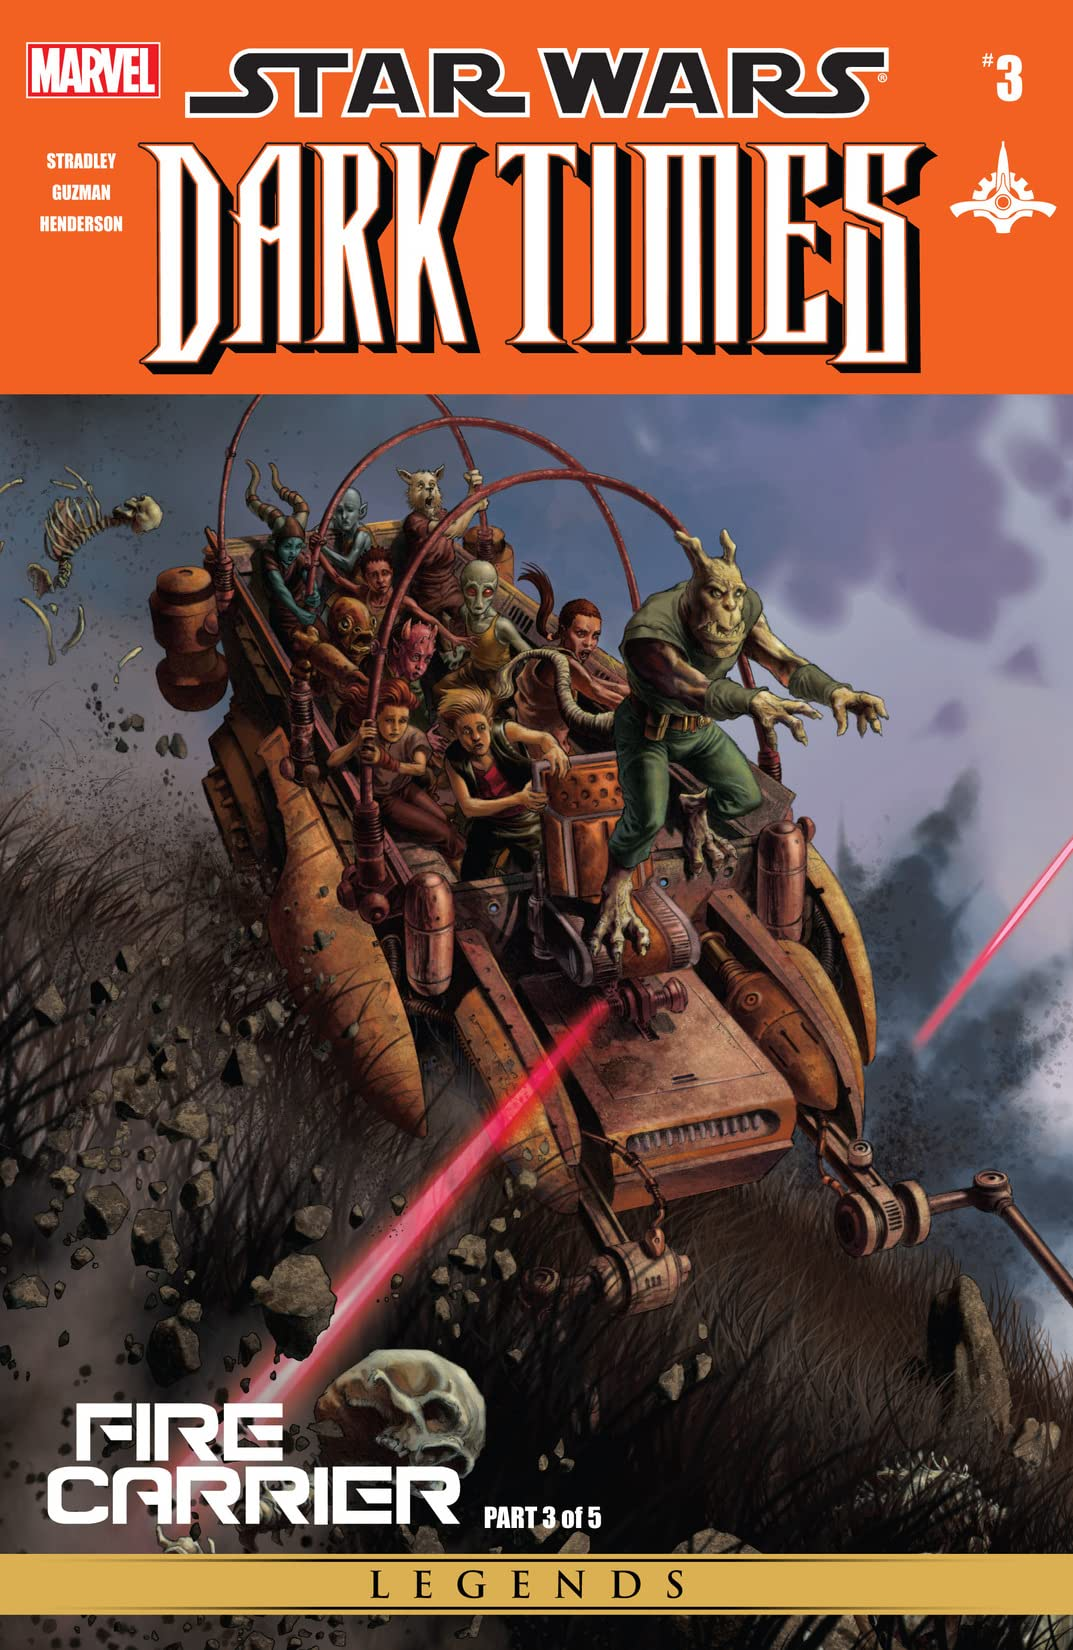 Star Wars: Dark Times - Fire Carrier (2013) #3 (of 5)